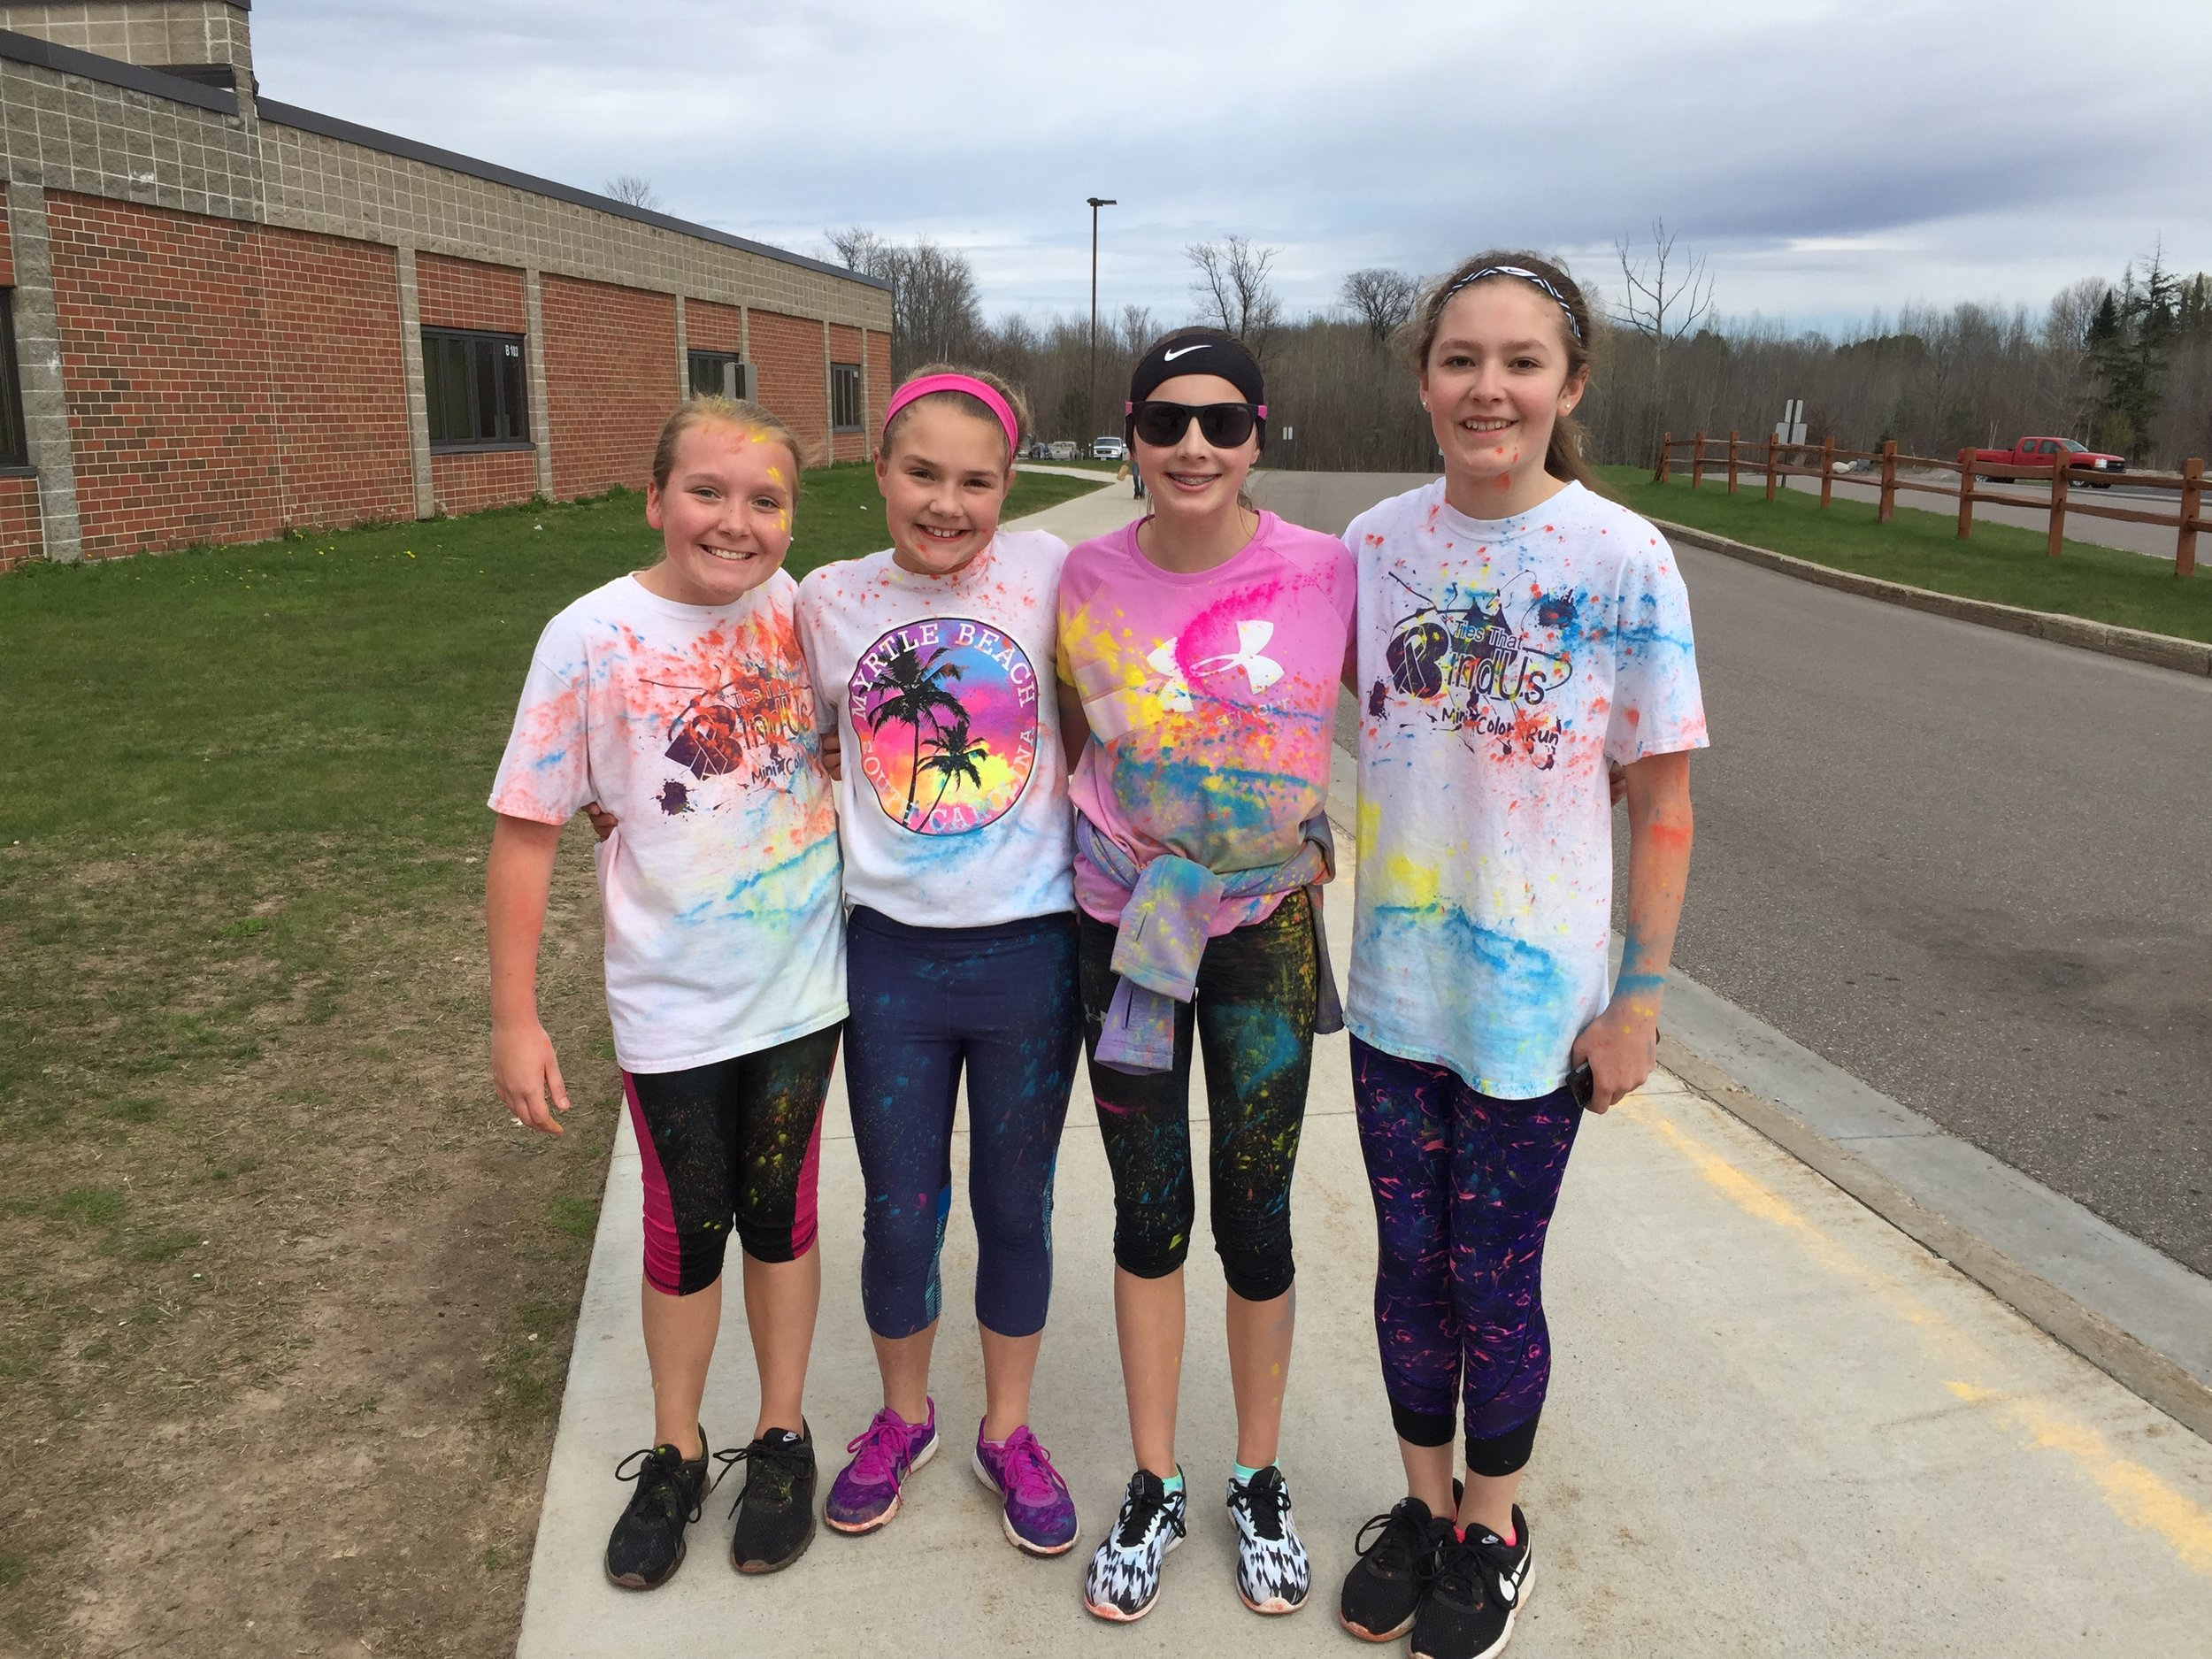 The District works with community groups focused on health. Here students participate in a mini-color run supported by the Ties that Bind Us.